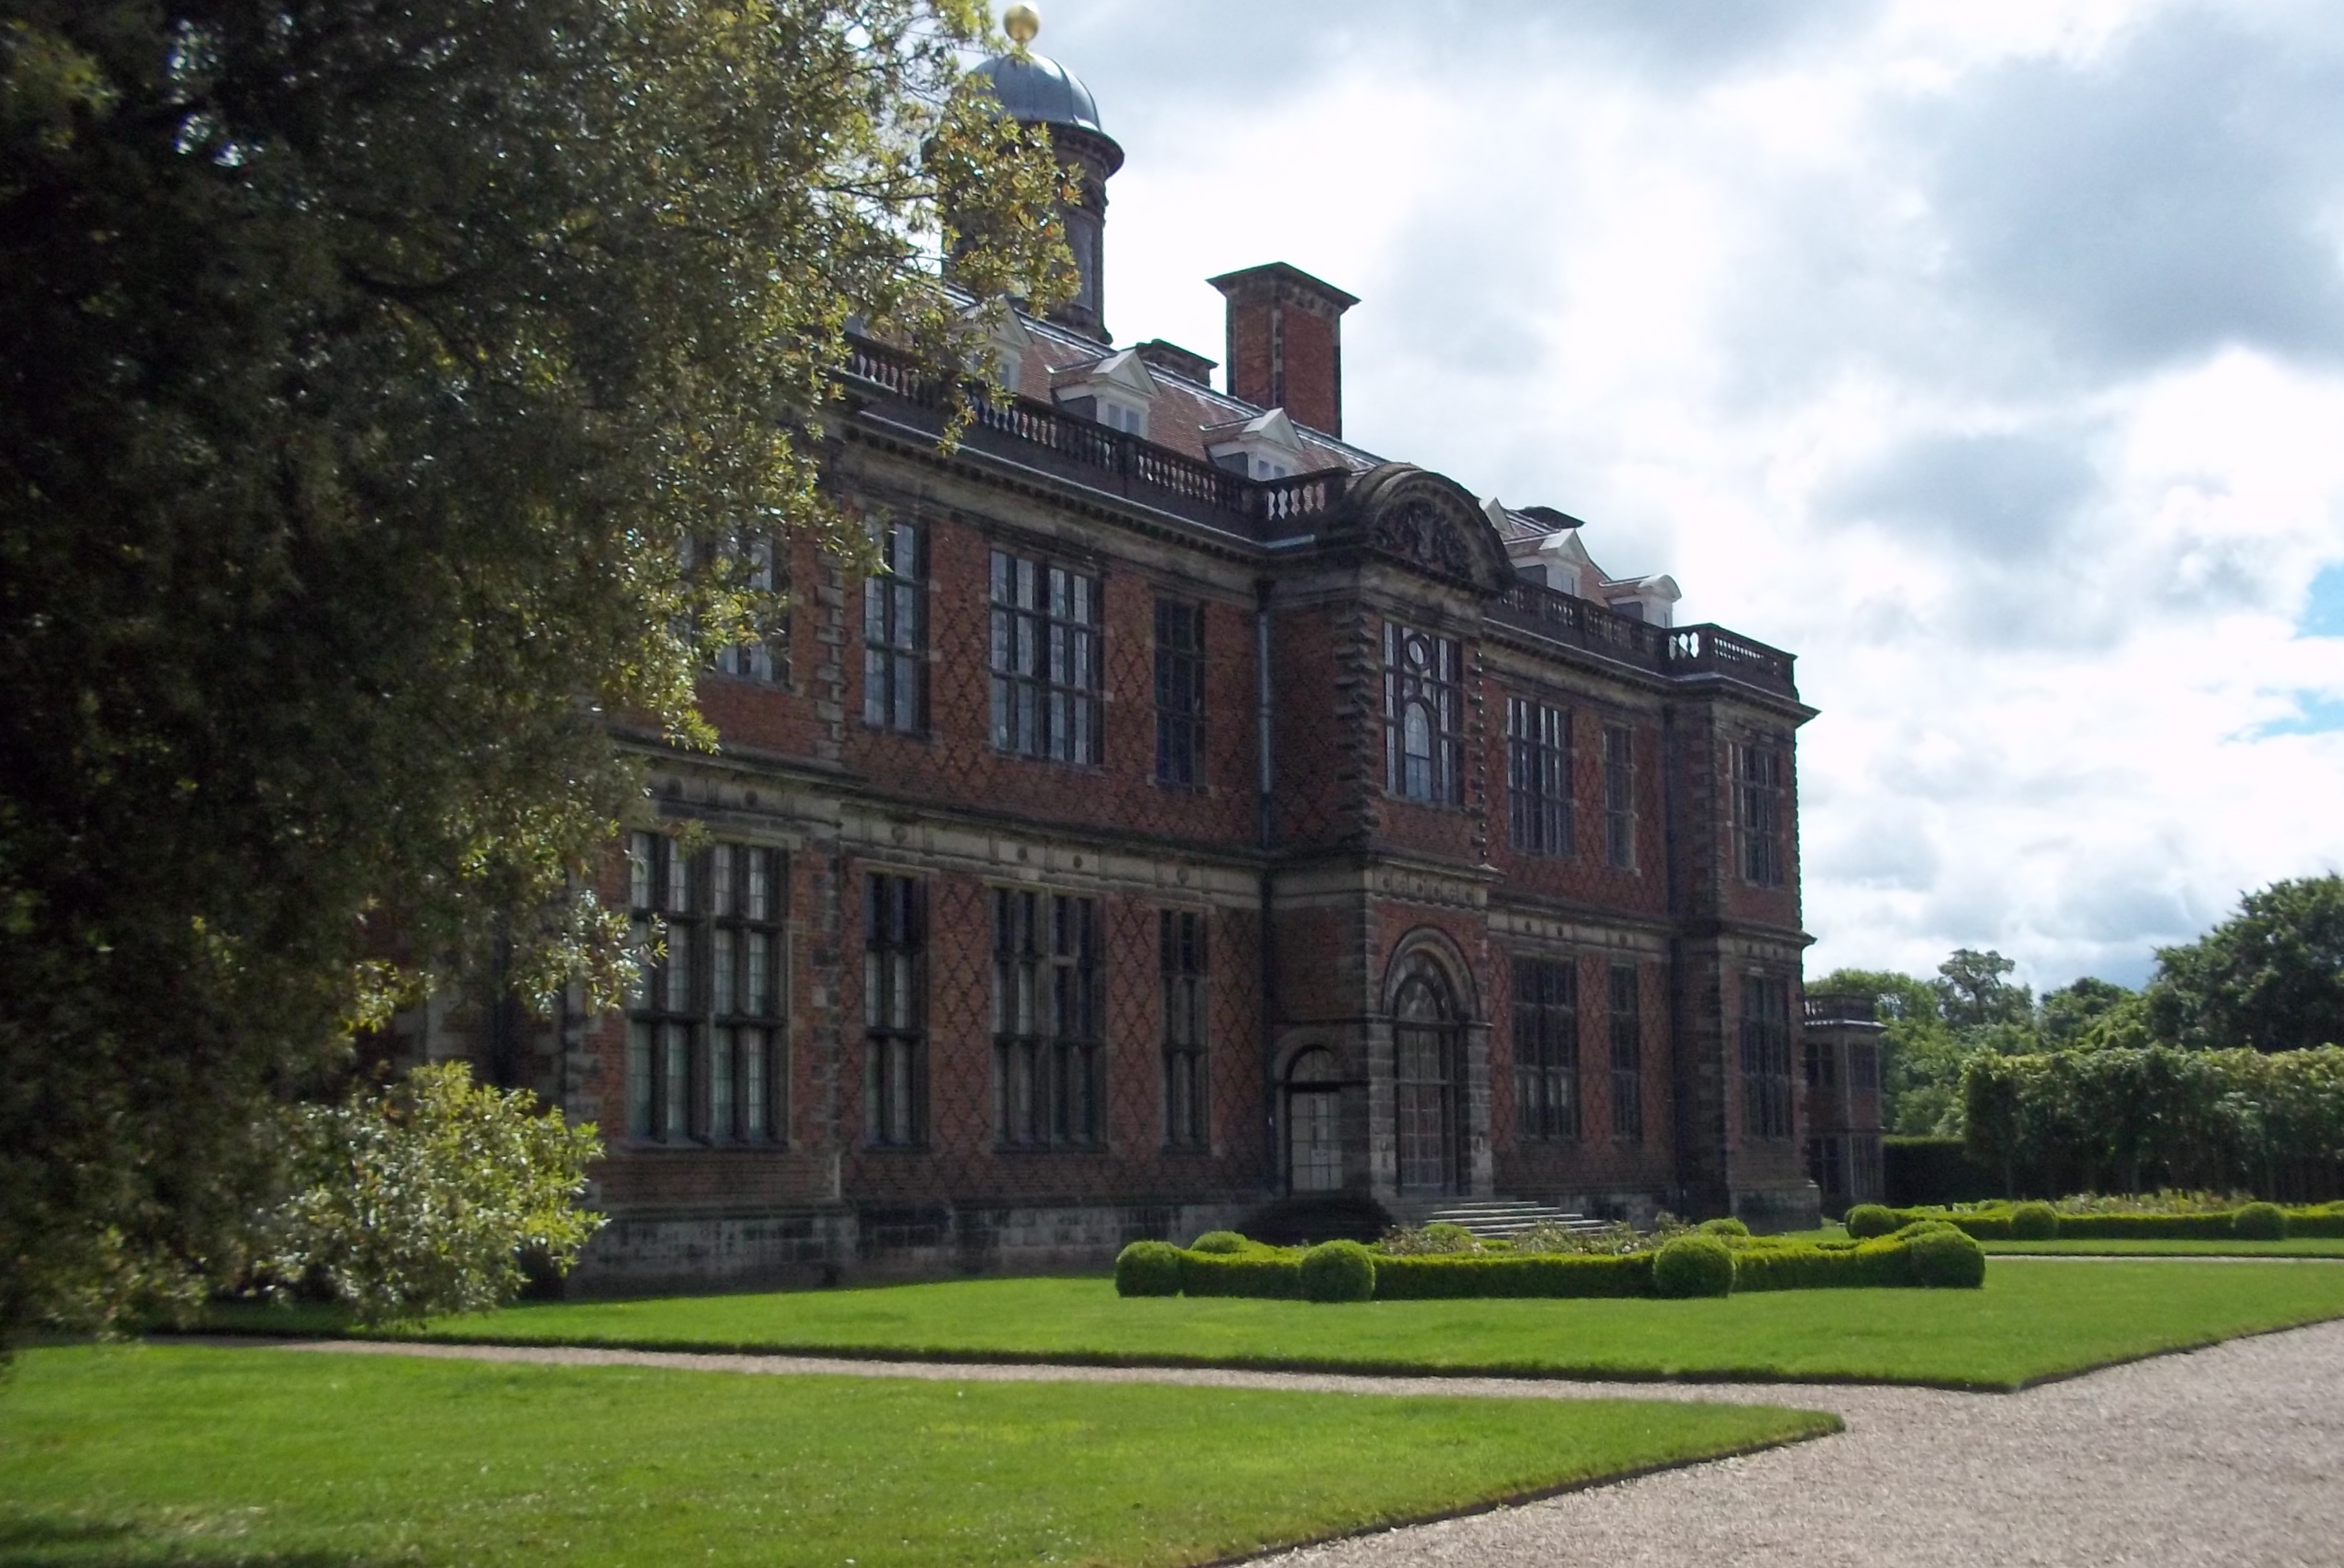 The magnificence of the Dunstall mansion in Staffordshire